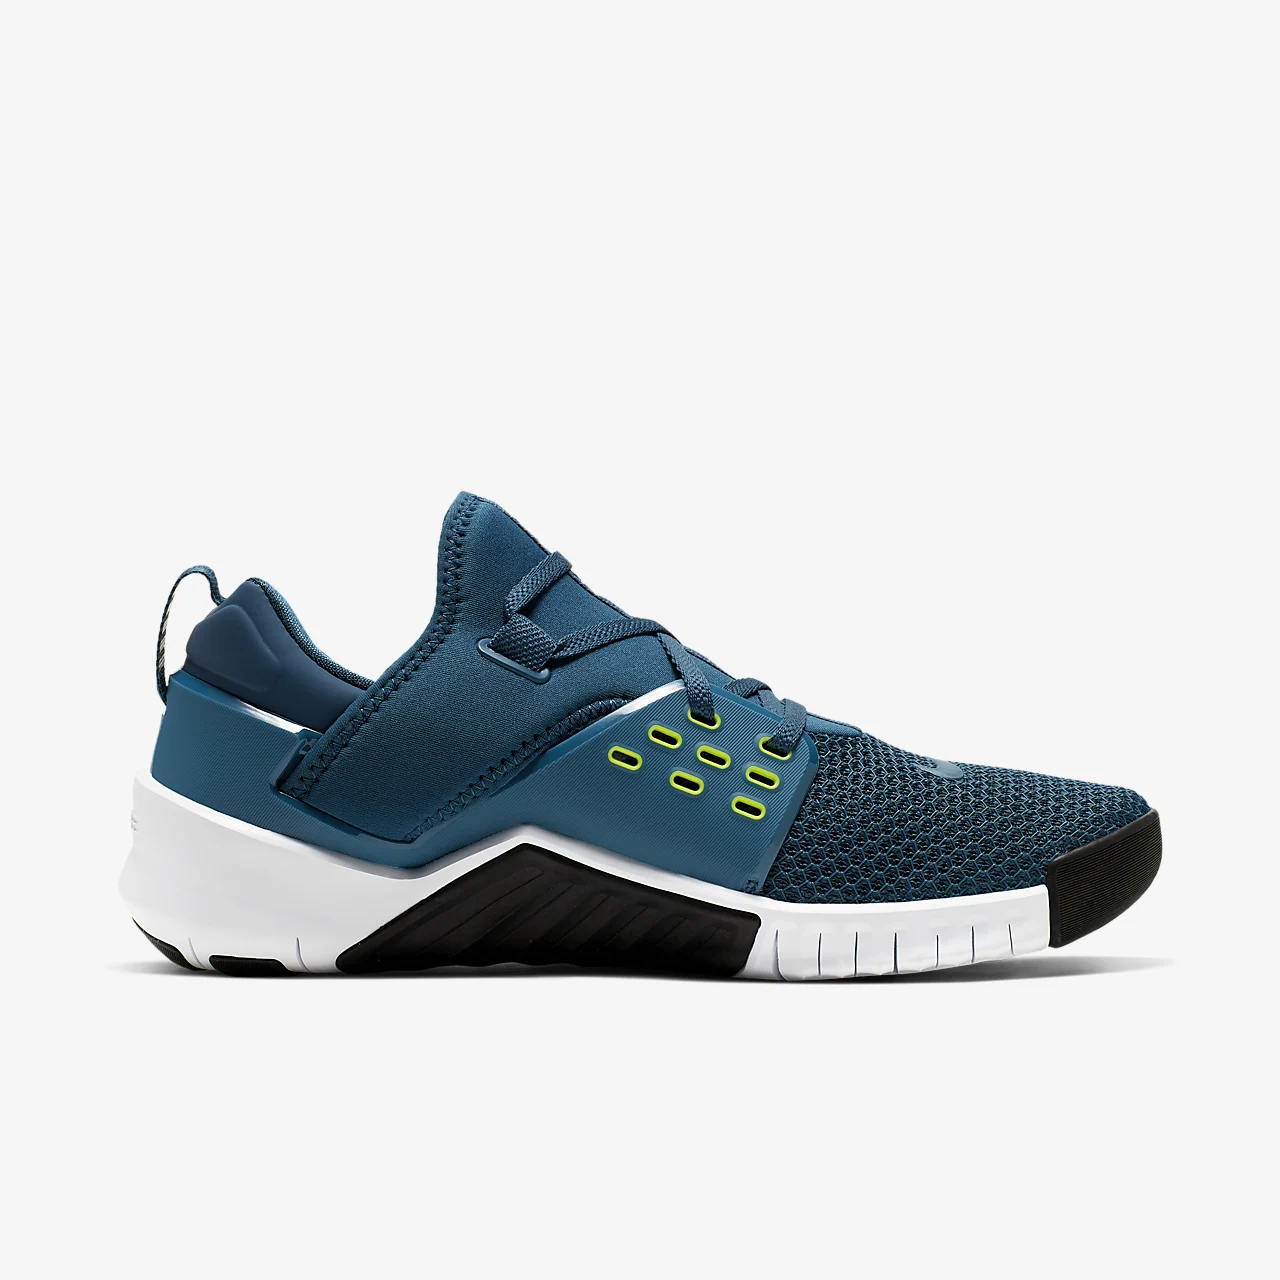 유럽직배송 나이키 NIKE Nike Free X Metcon 2 Men's Training Shoe AQ8306-407